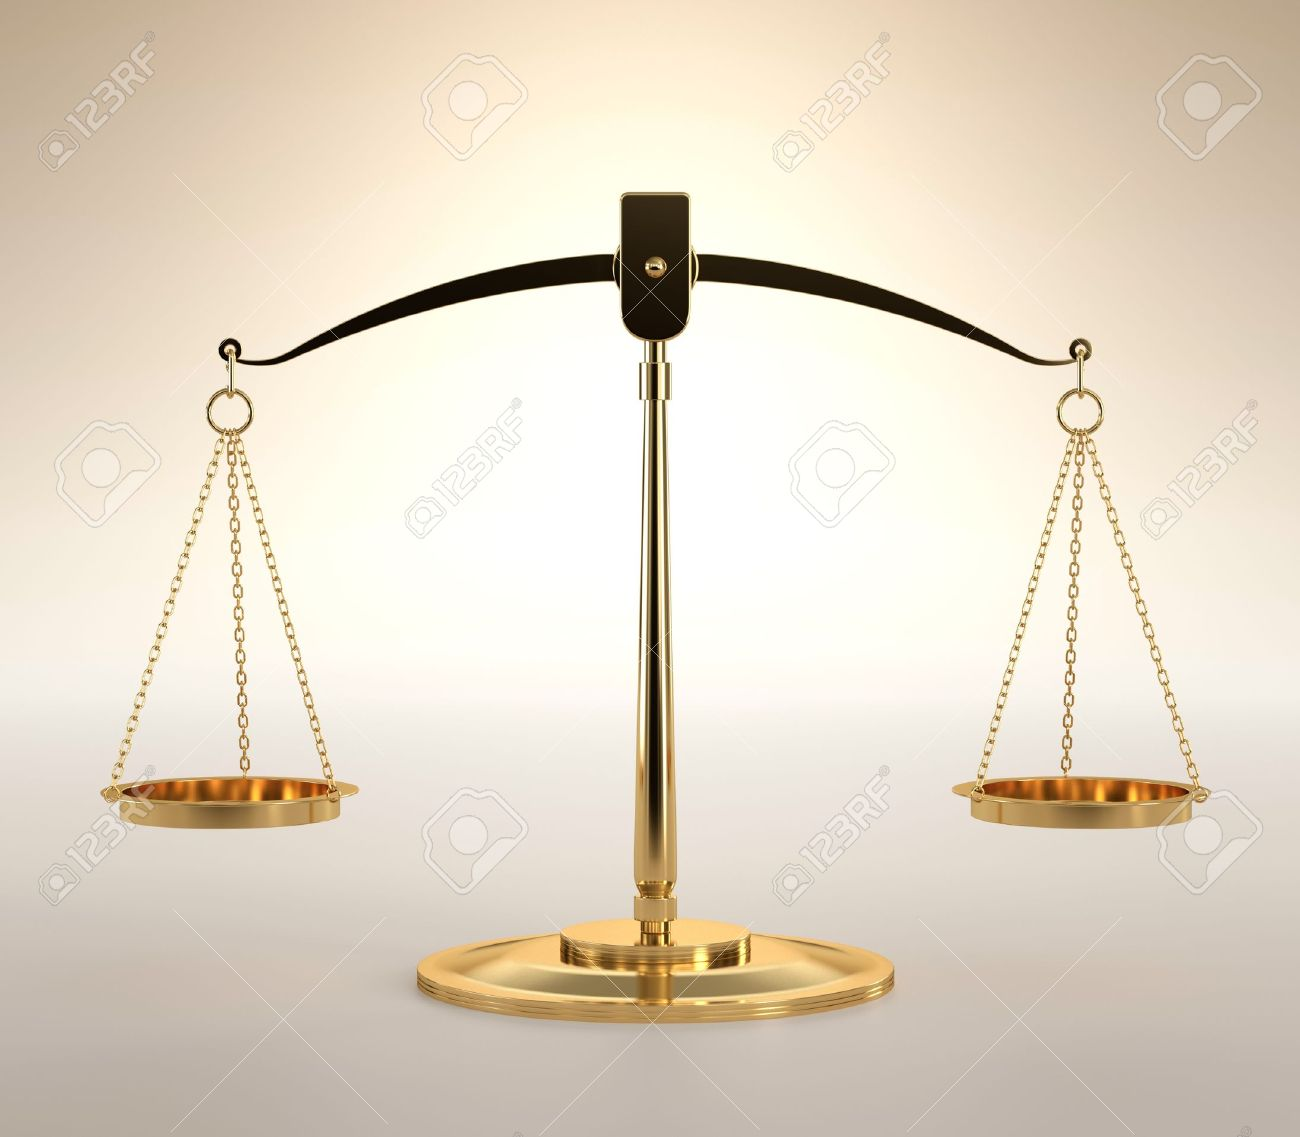 3D illustration of scales of justice on orange background Stock Photo - 16306820